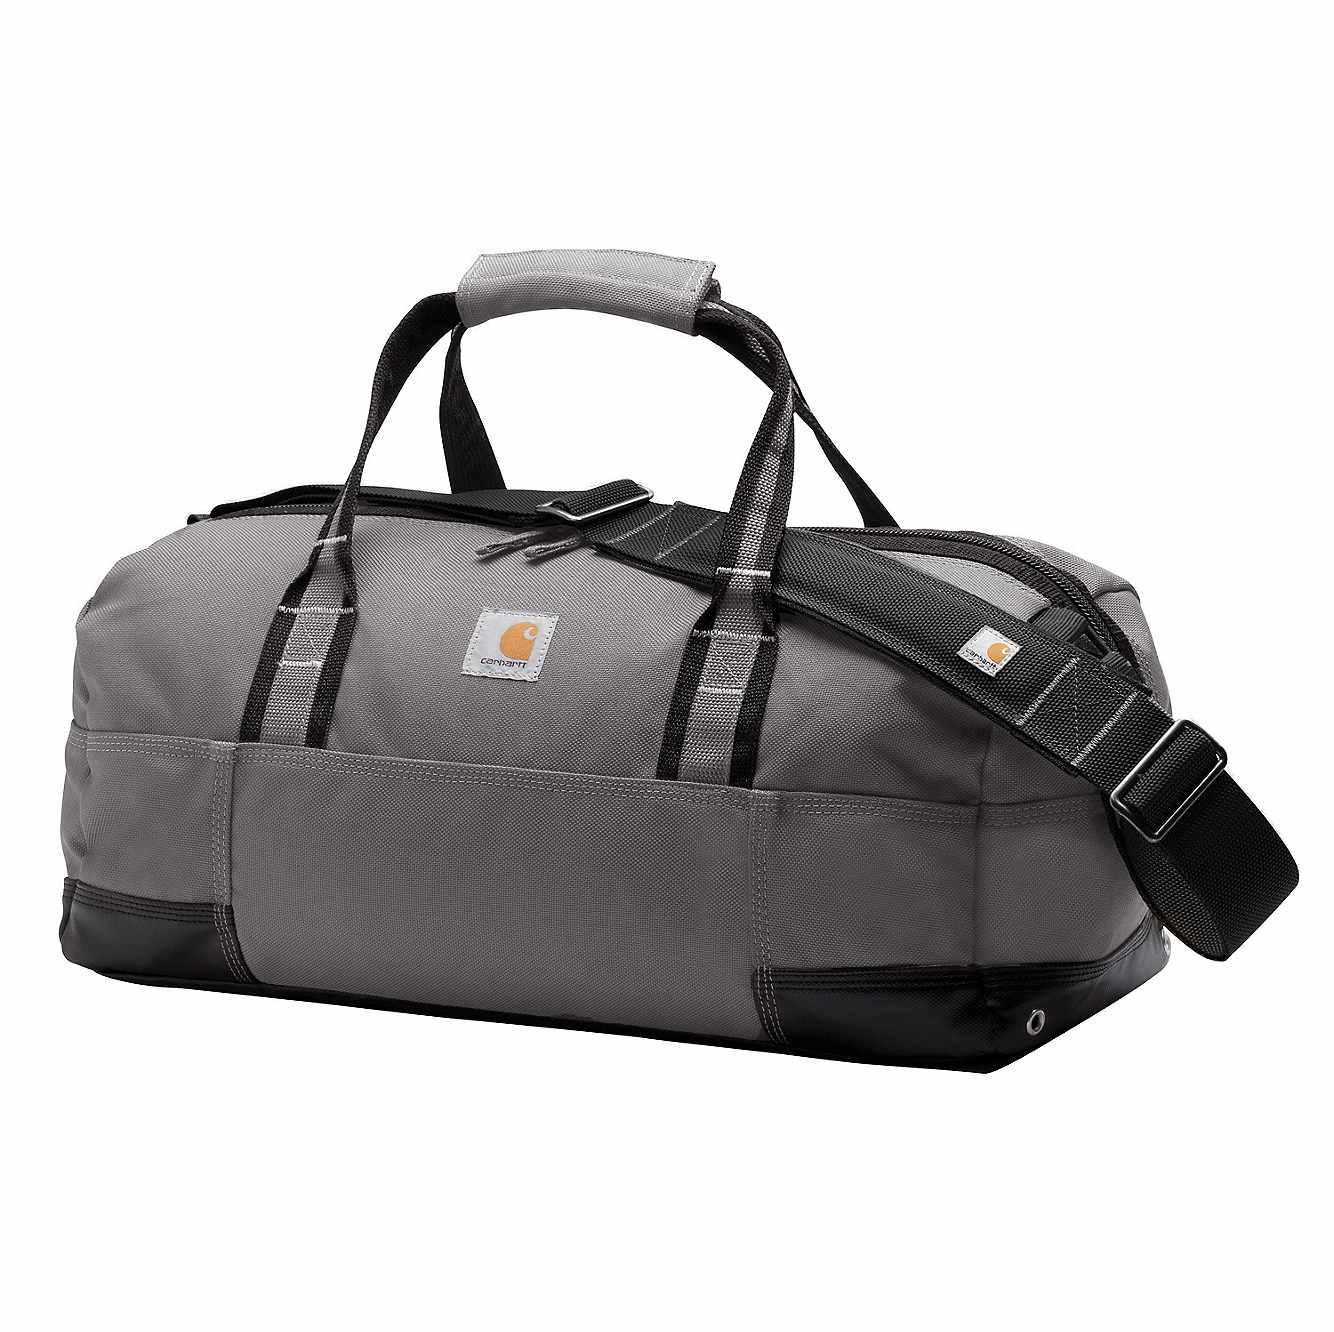 "Picture of Legacy 20"" Gear Bag in Gray"